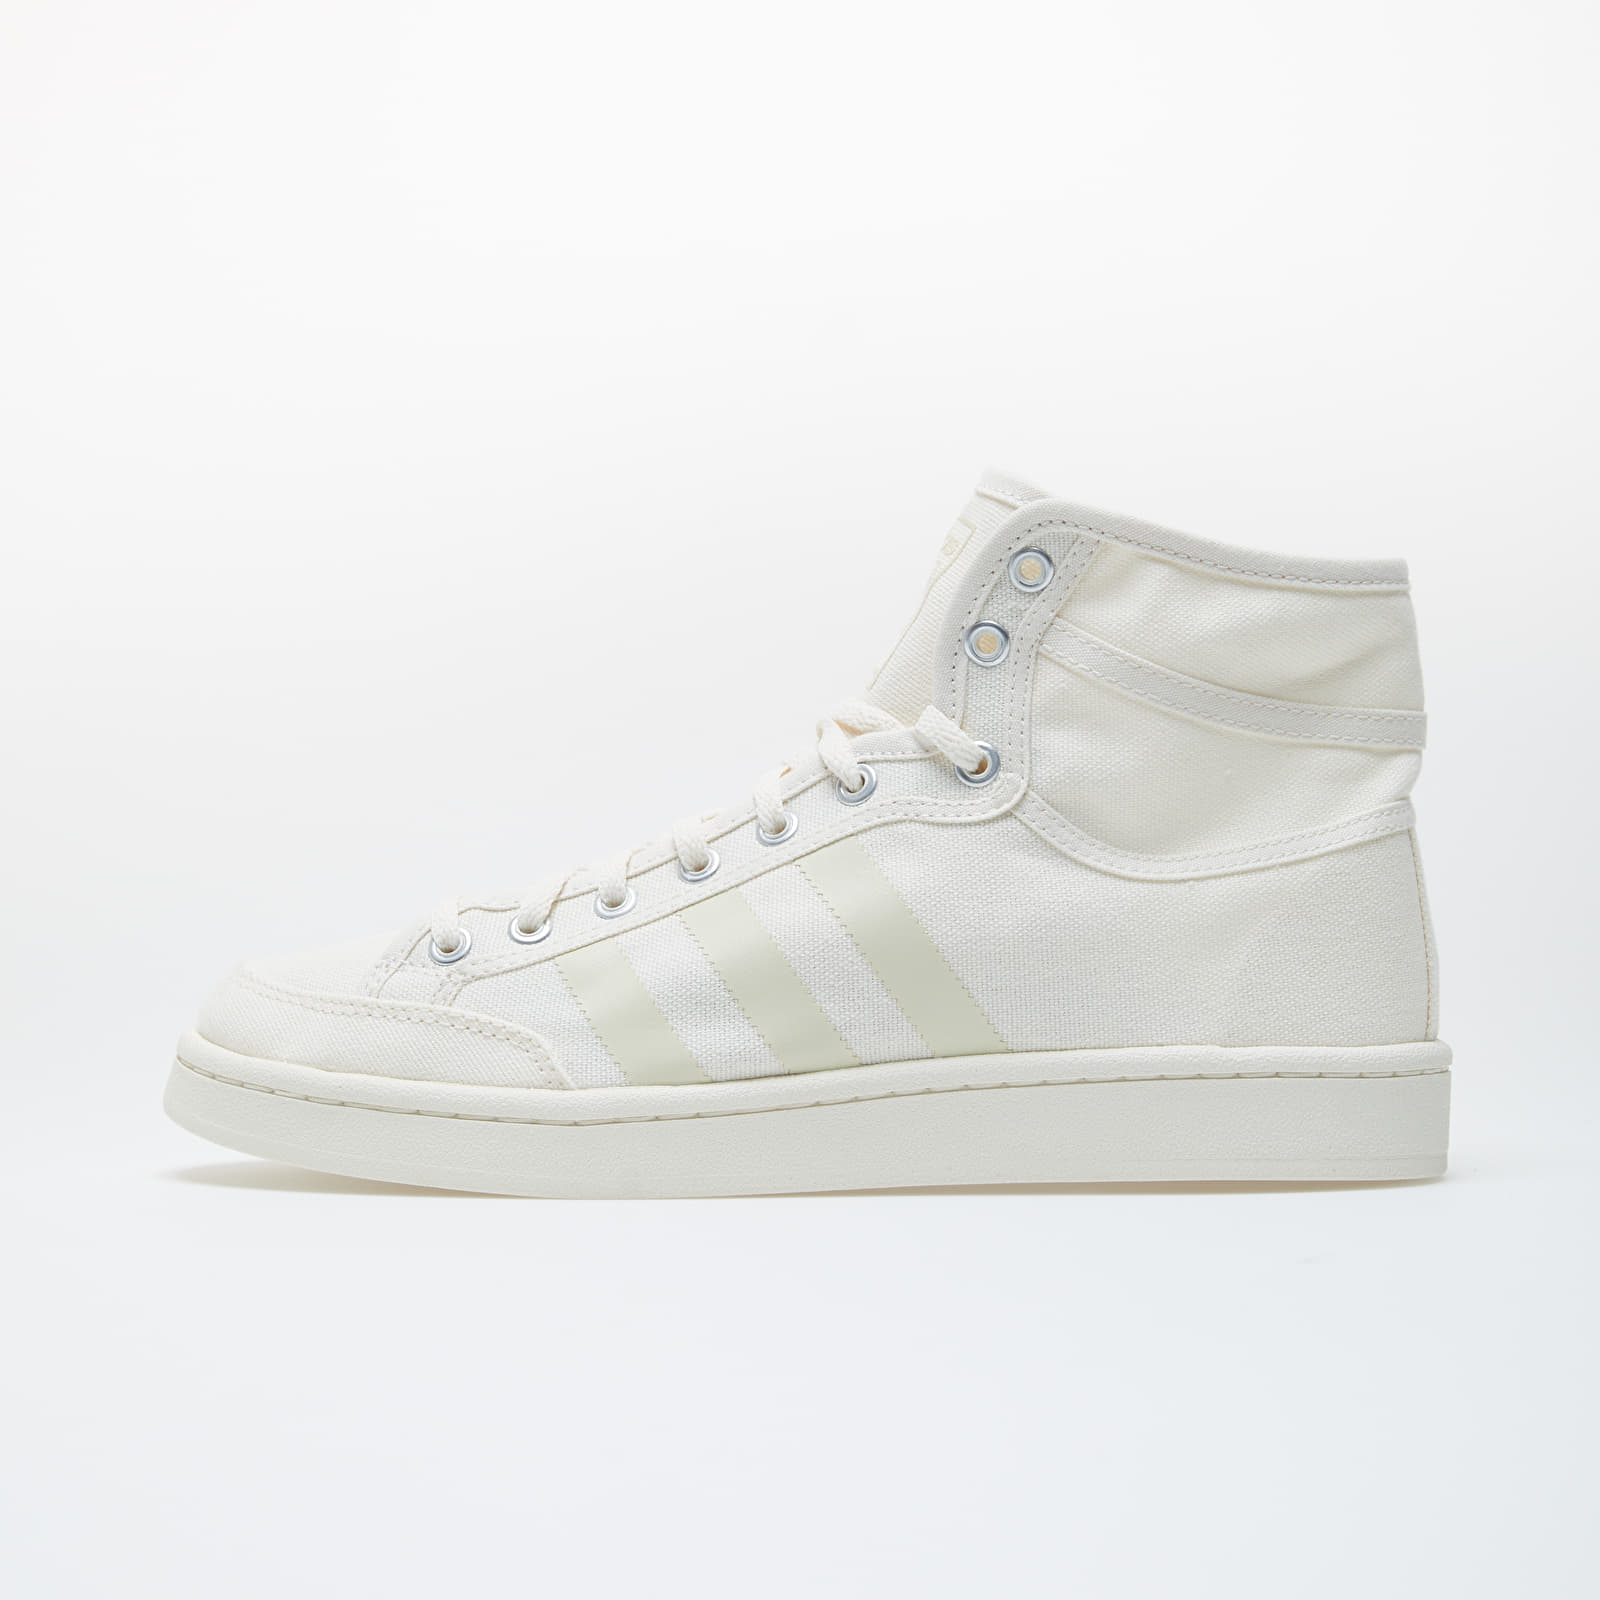 Men's shoes adidas Americana Decon Core White/ Core White/ Core White